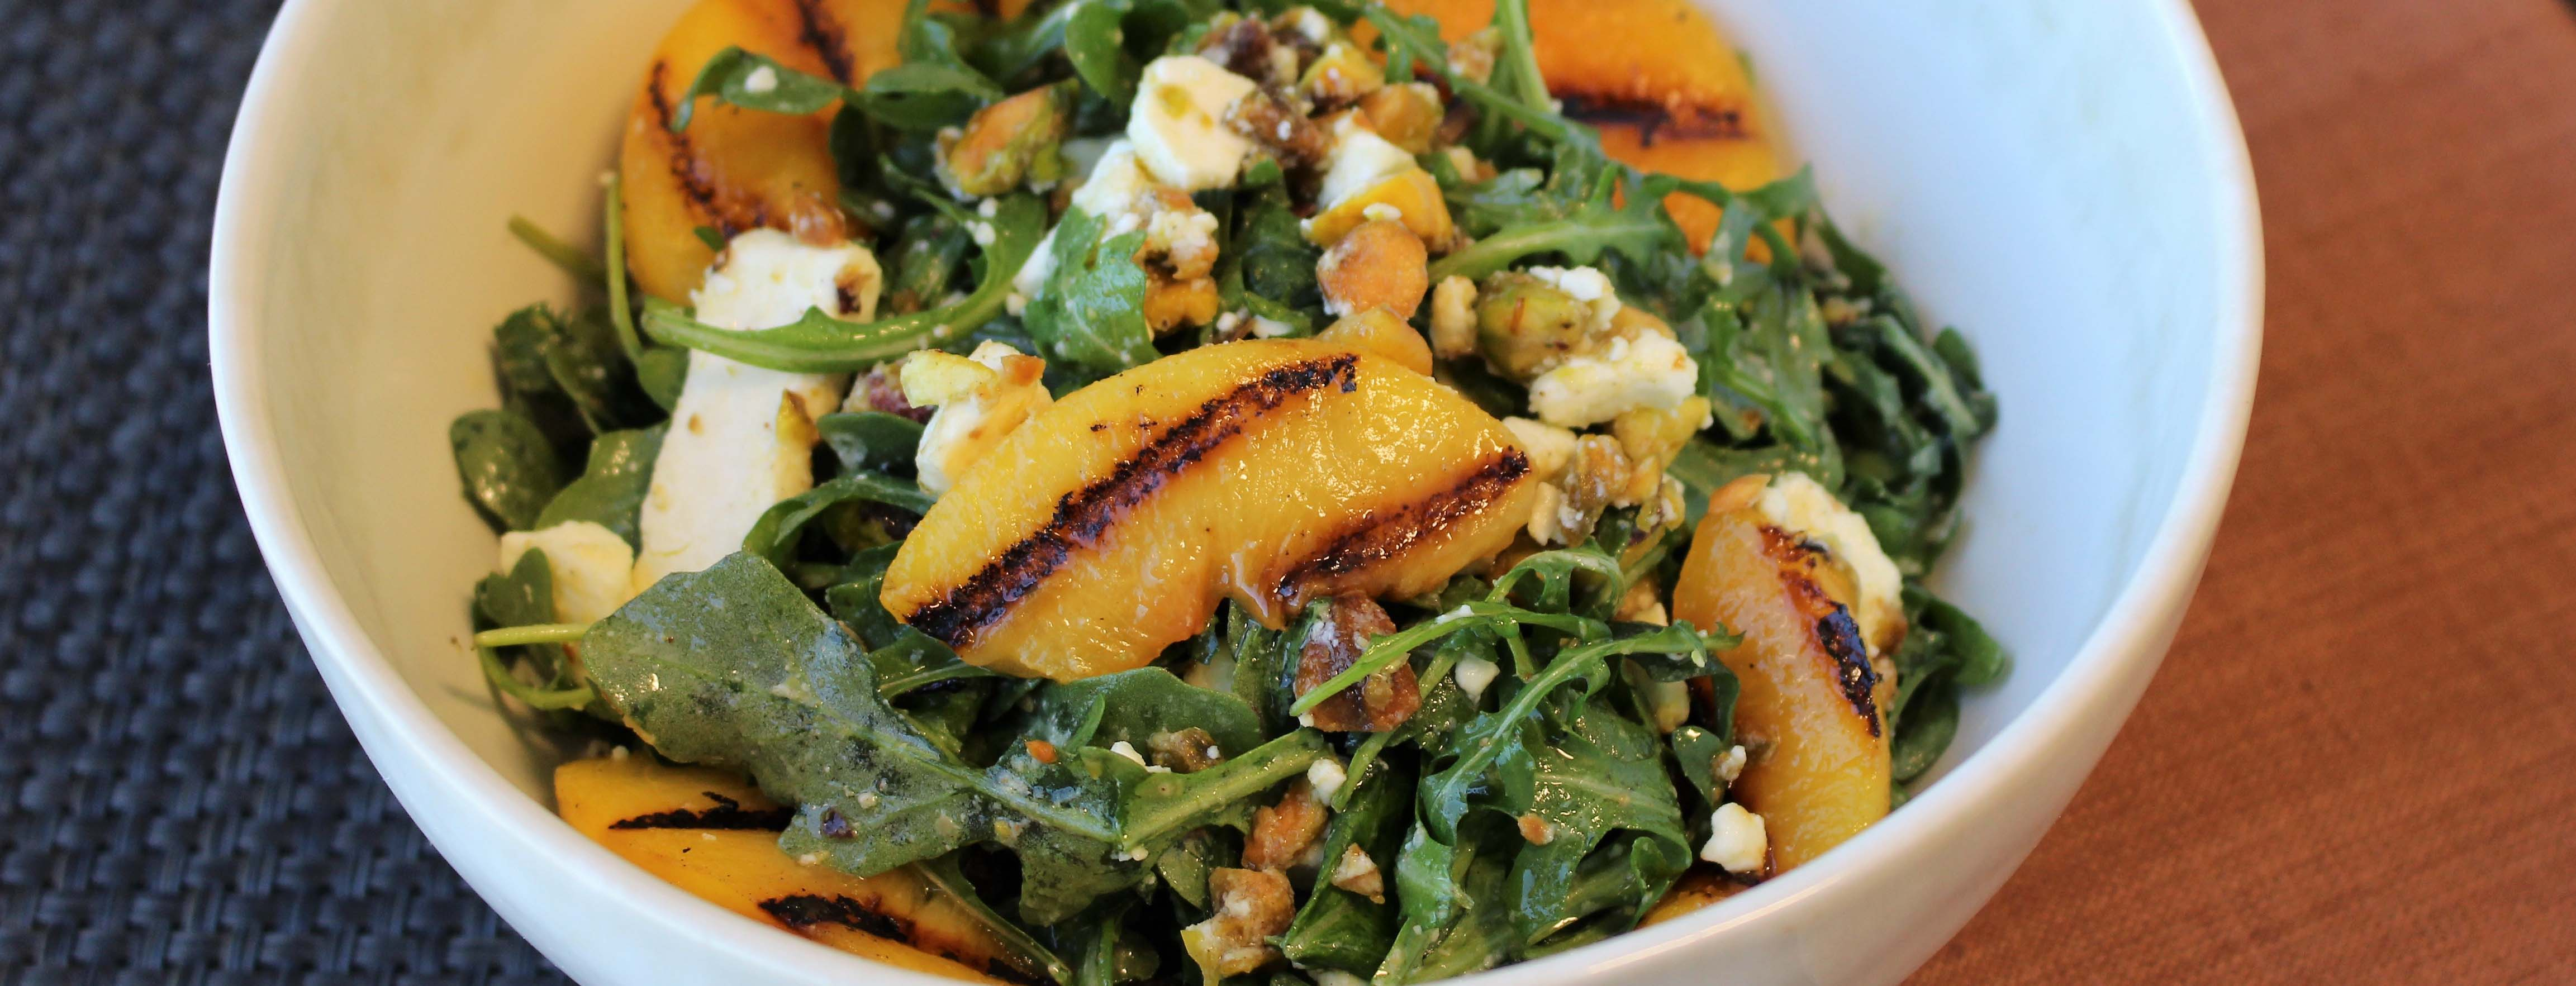 Photo of Grilled Peach and Arugula Salad with Cardamom and Clove Vinaigrette